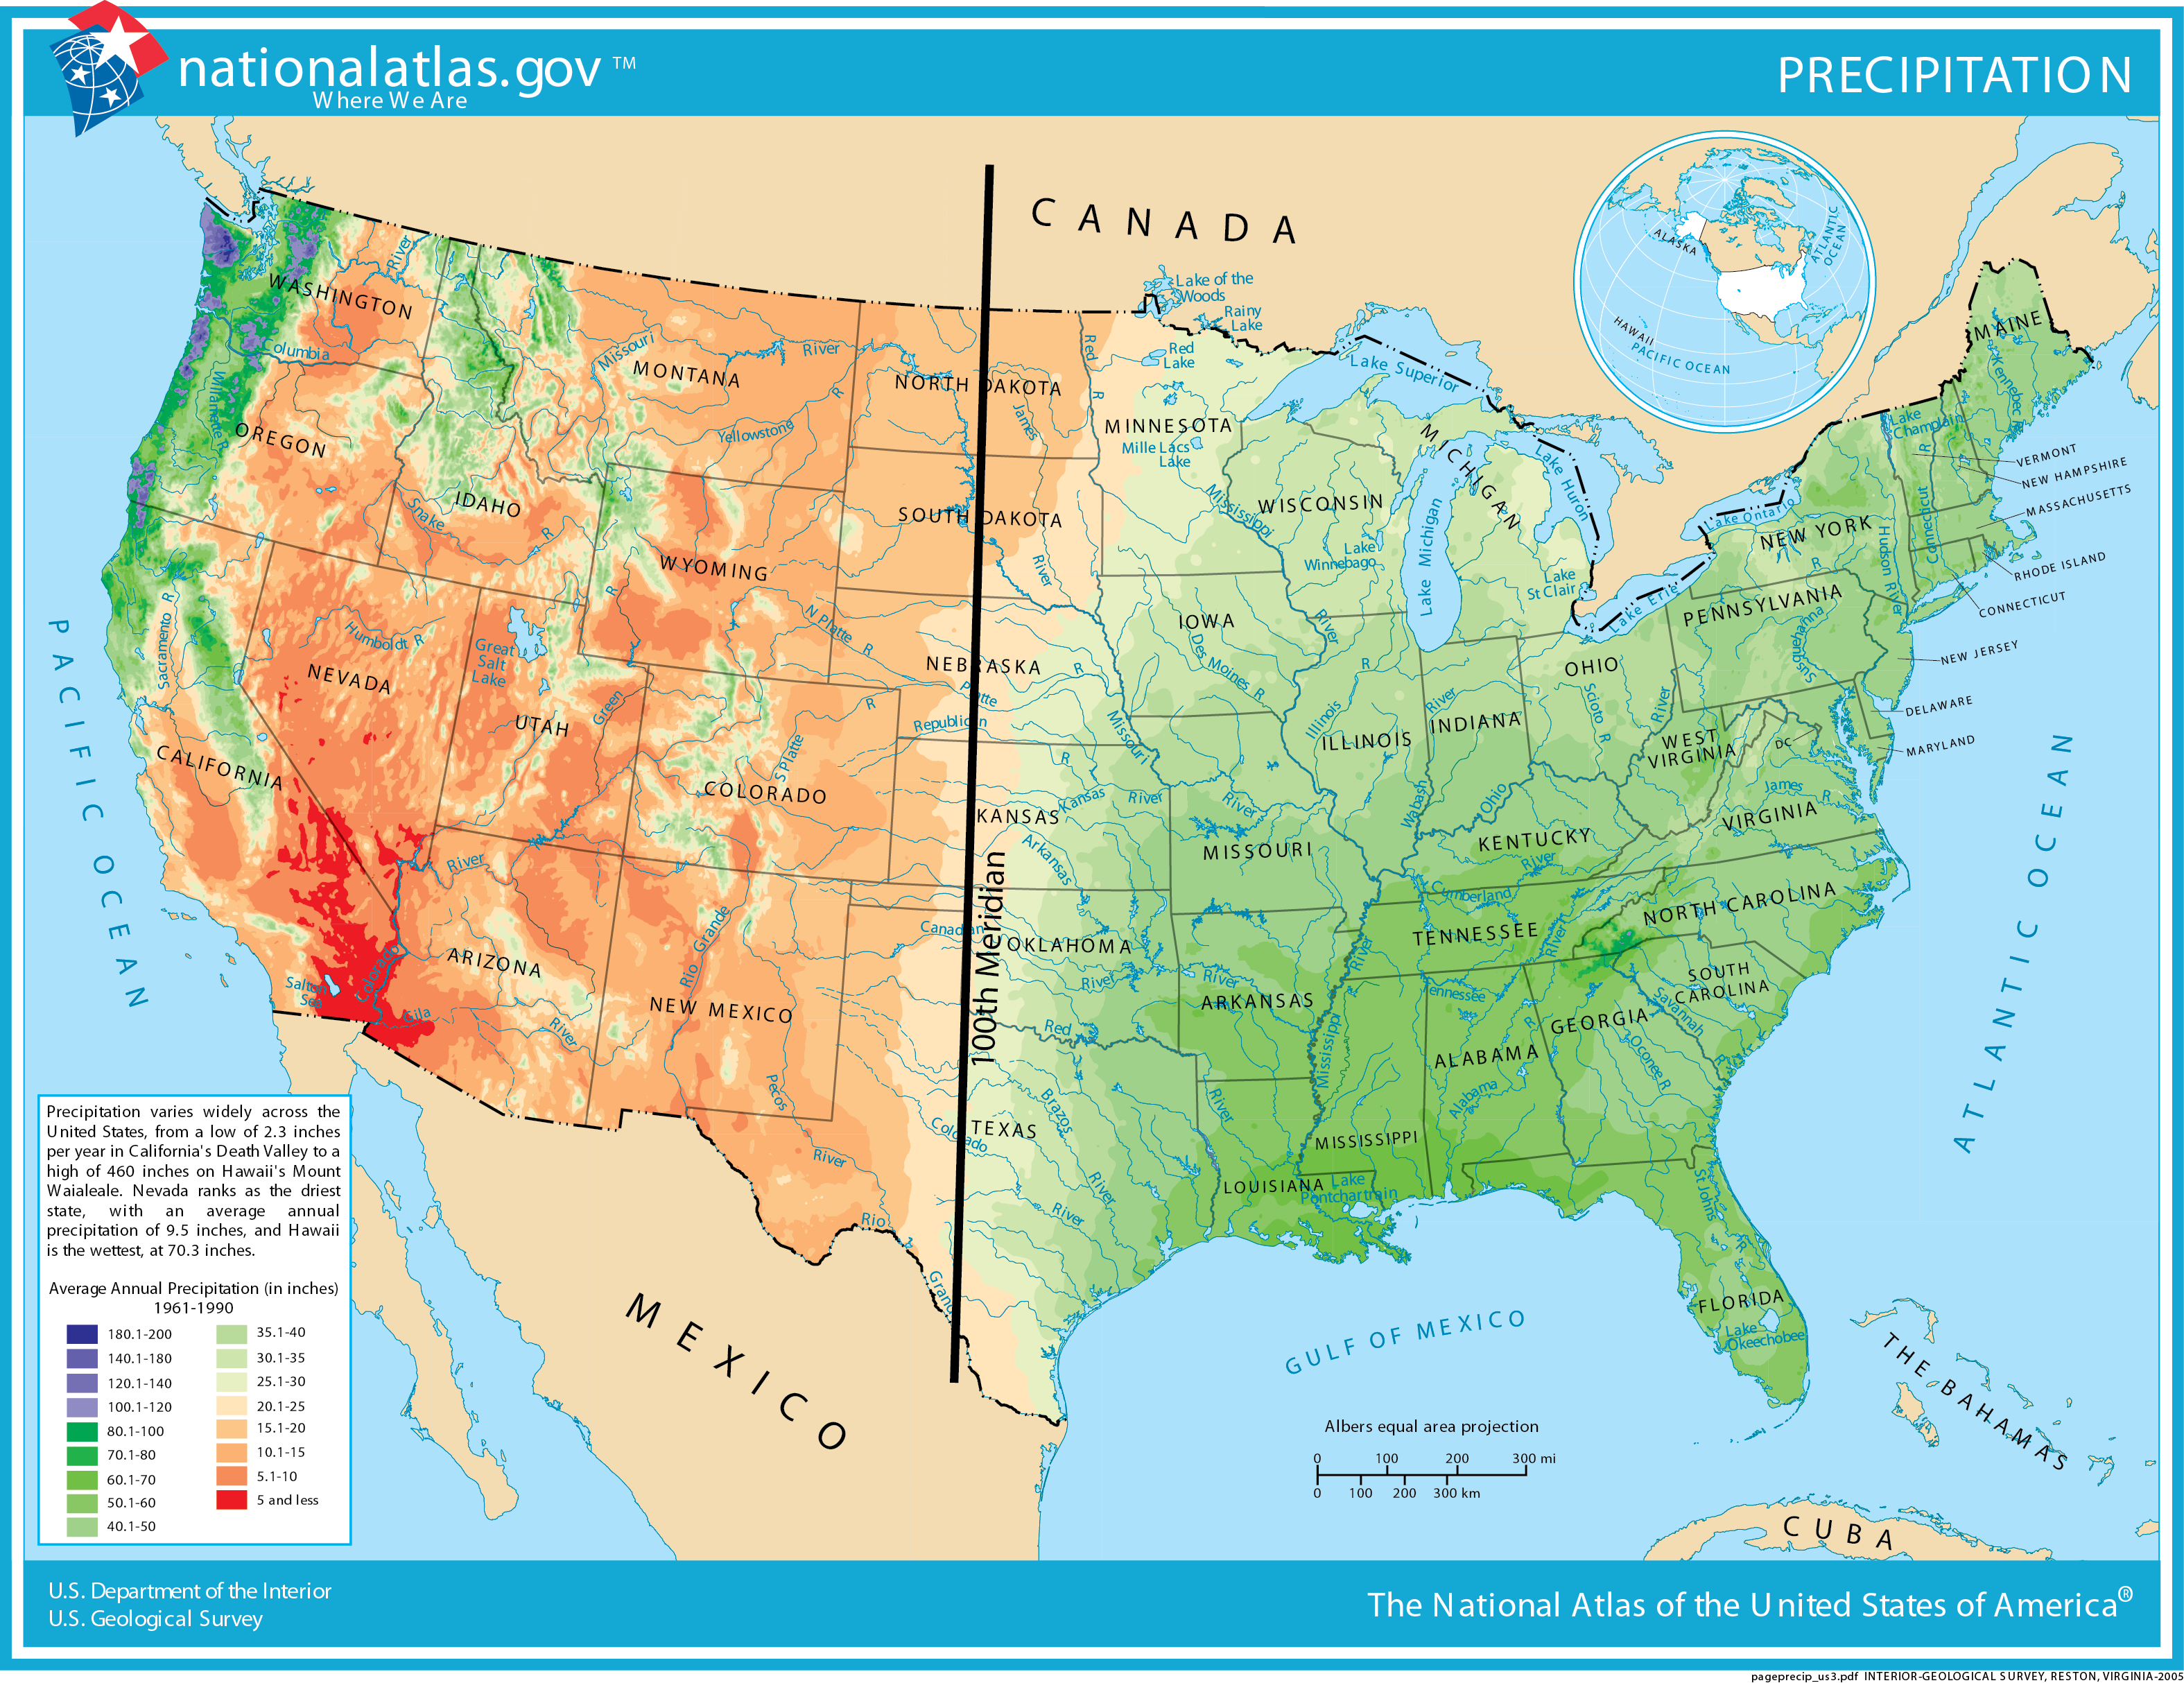 Distribution of precipitation in the United States.